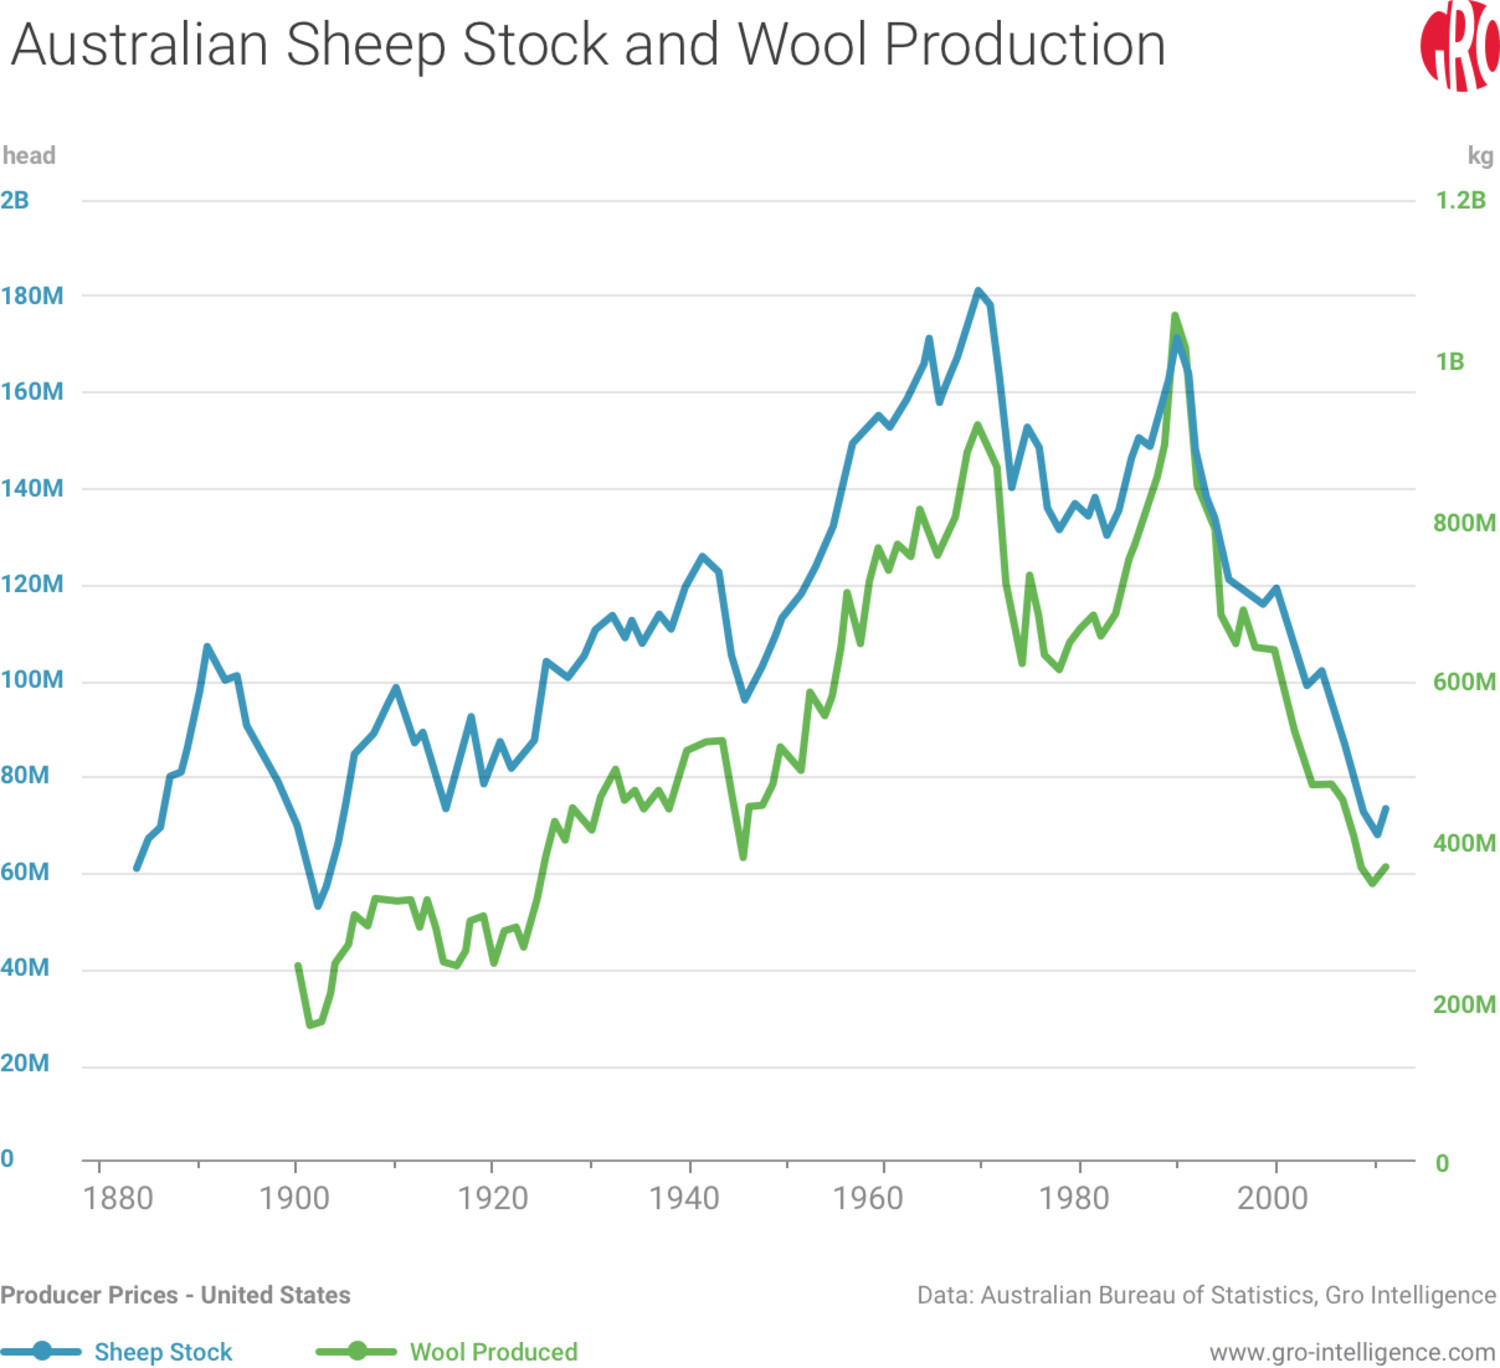 Australian Sheep Stock and Wool Production